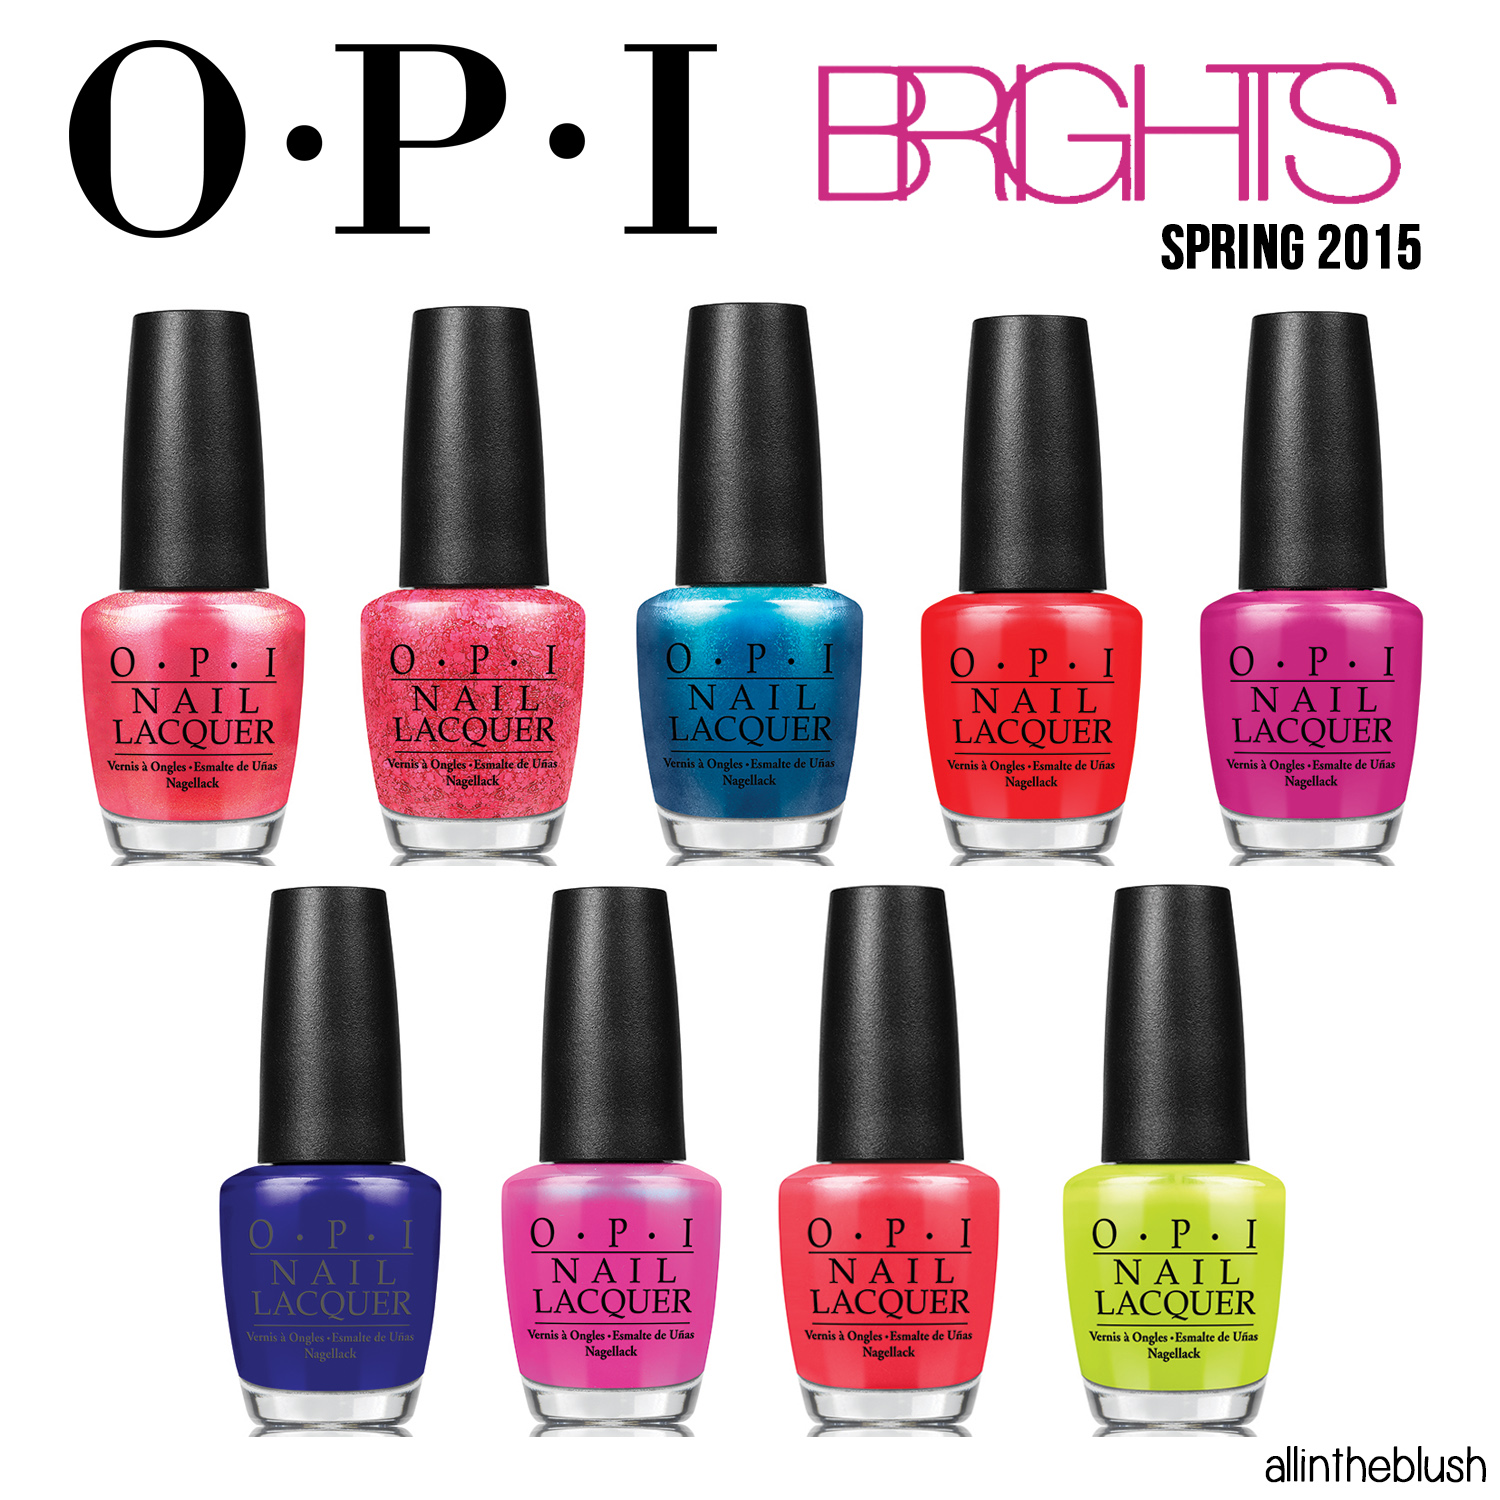 opi brights 2015 collection - review & swatches - all in the blush